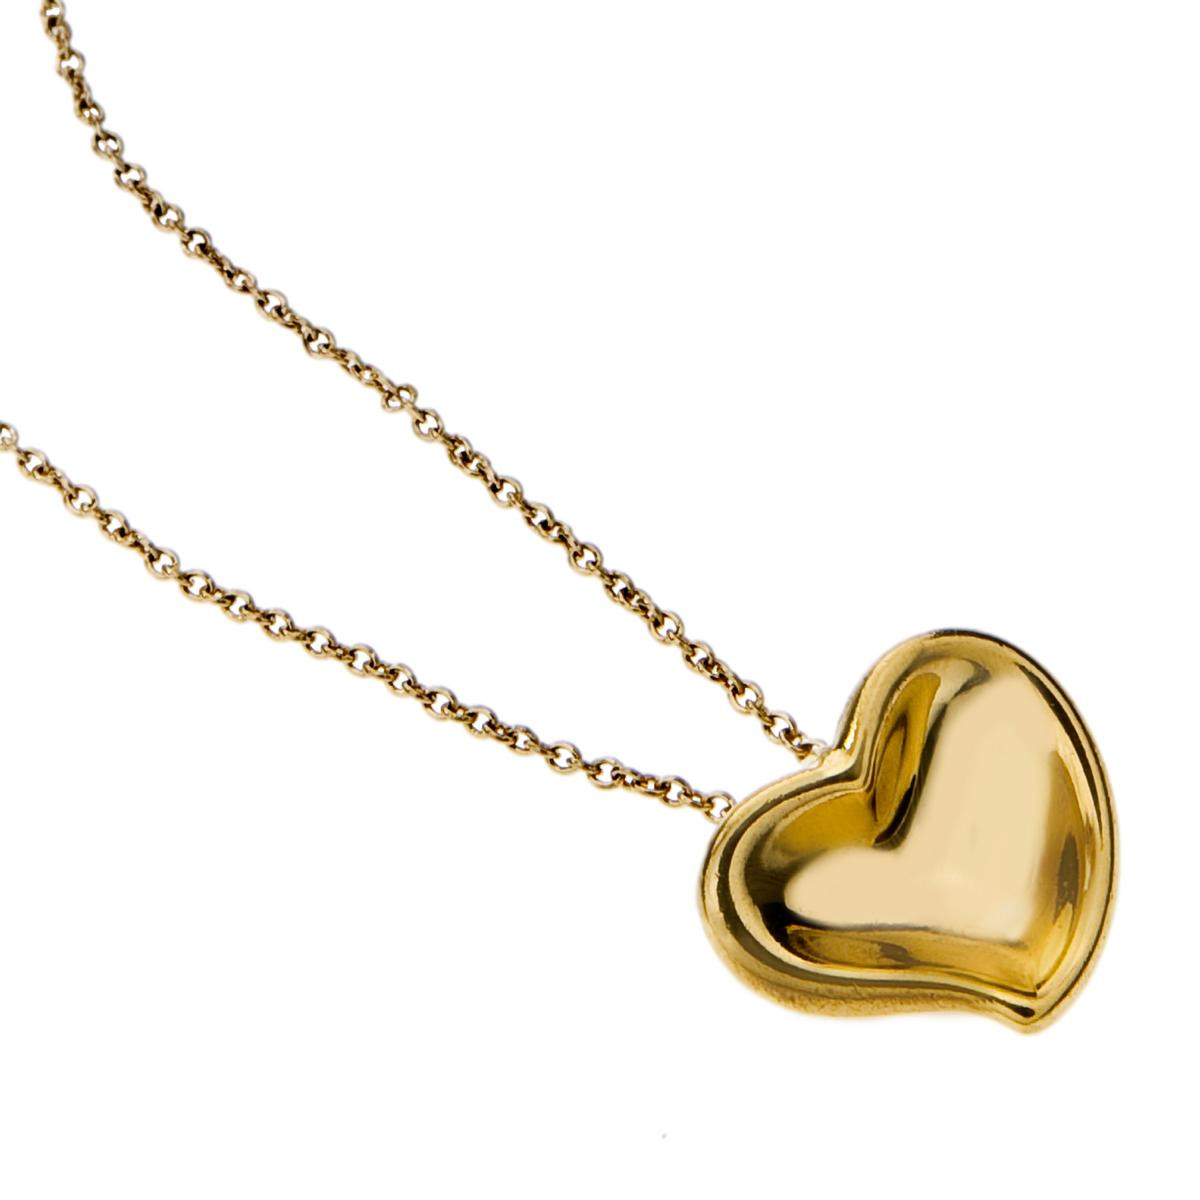 Vintage Tiffany & Co. Elsa Peretti Heart Necklace